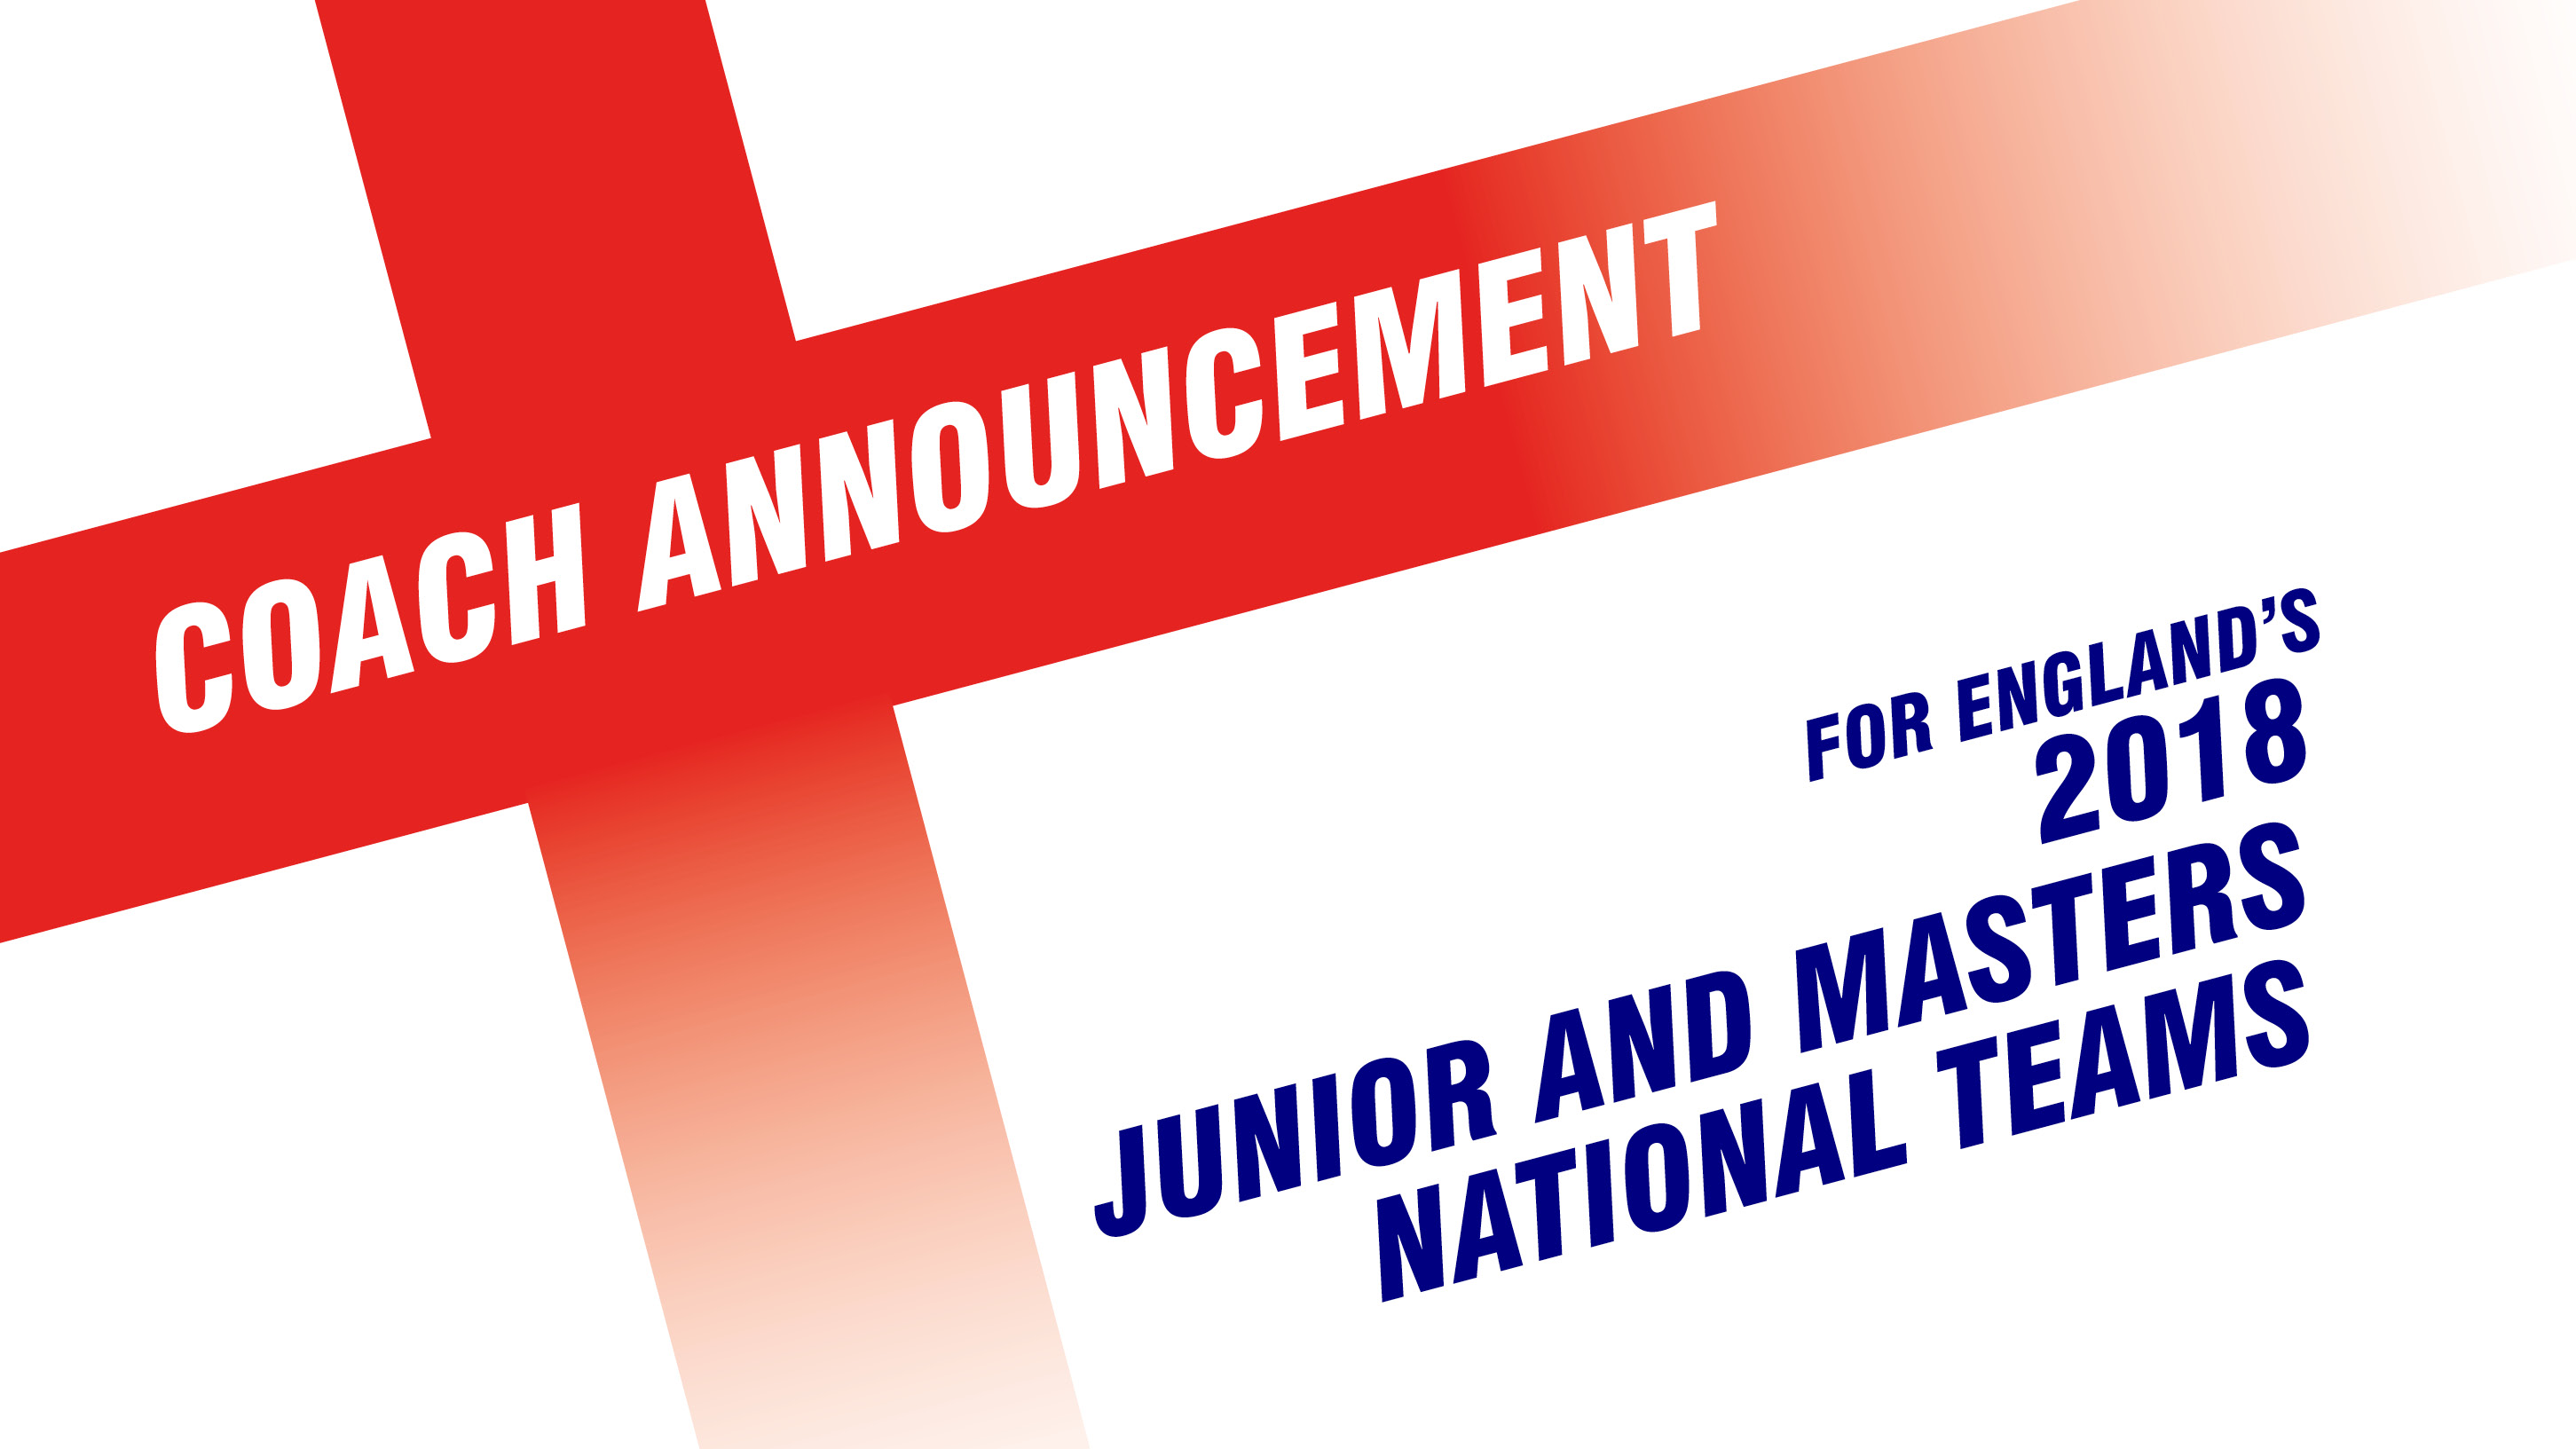 England Junior and Masters coaches announced